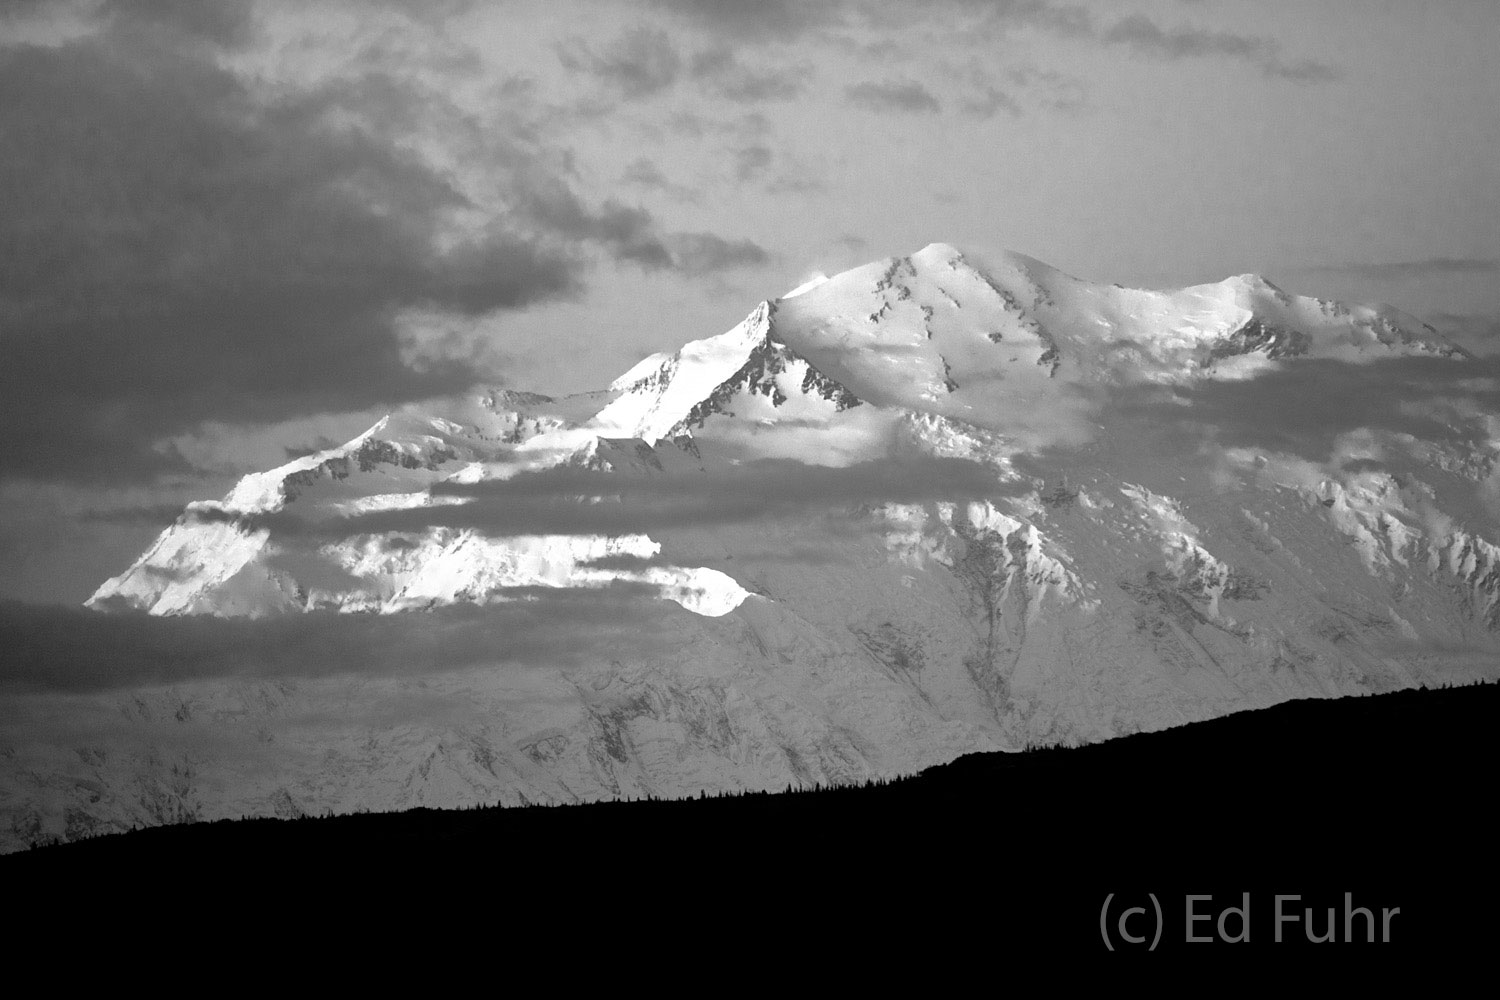 Most days Denali is obscured by clouds like these just beginning to form around its peak this morning